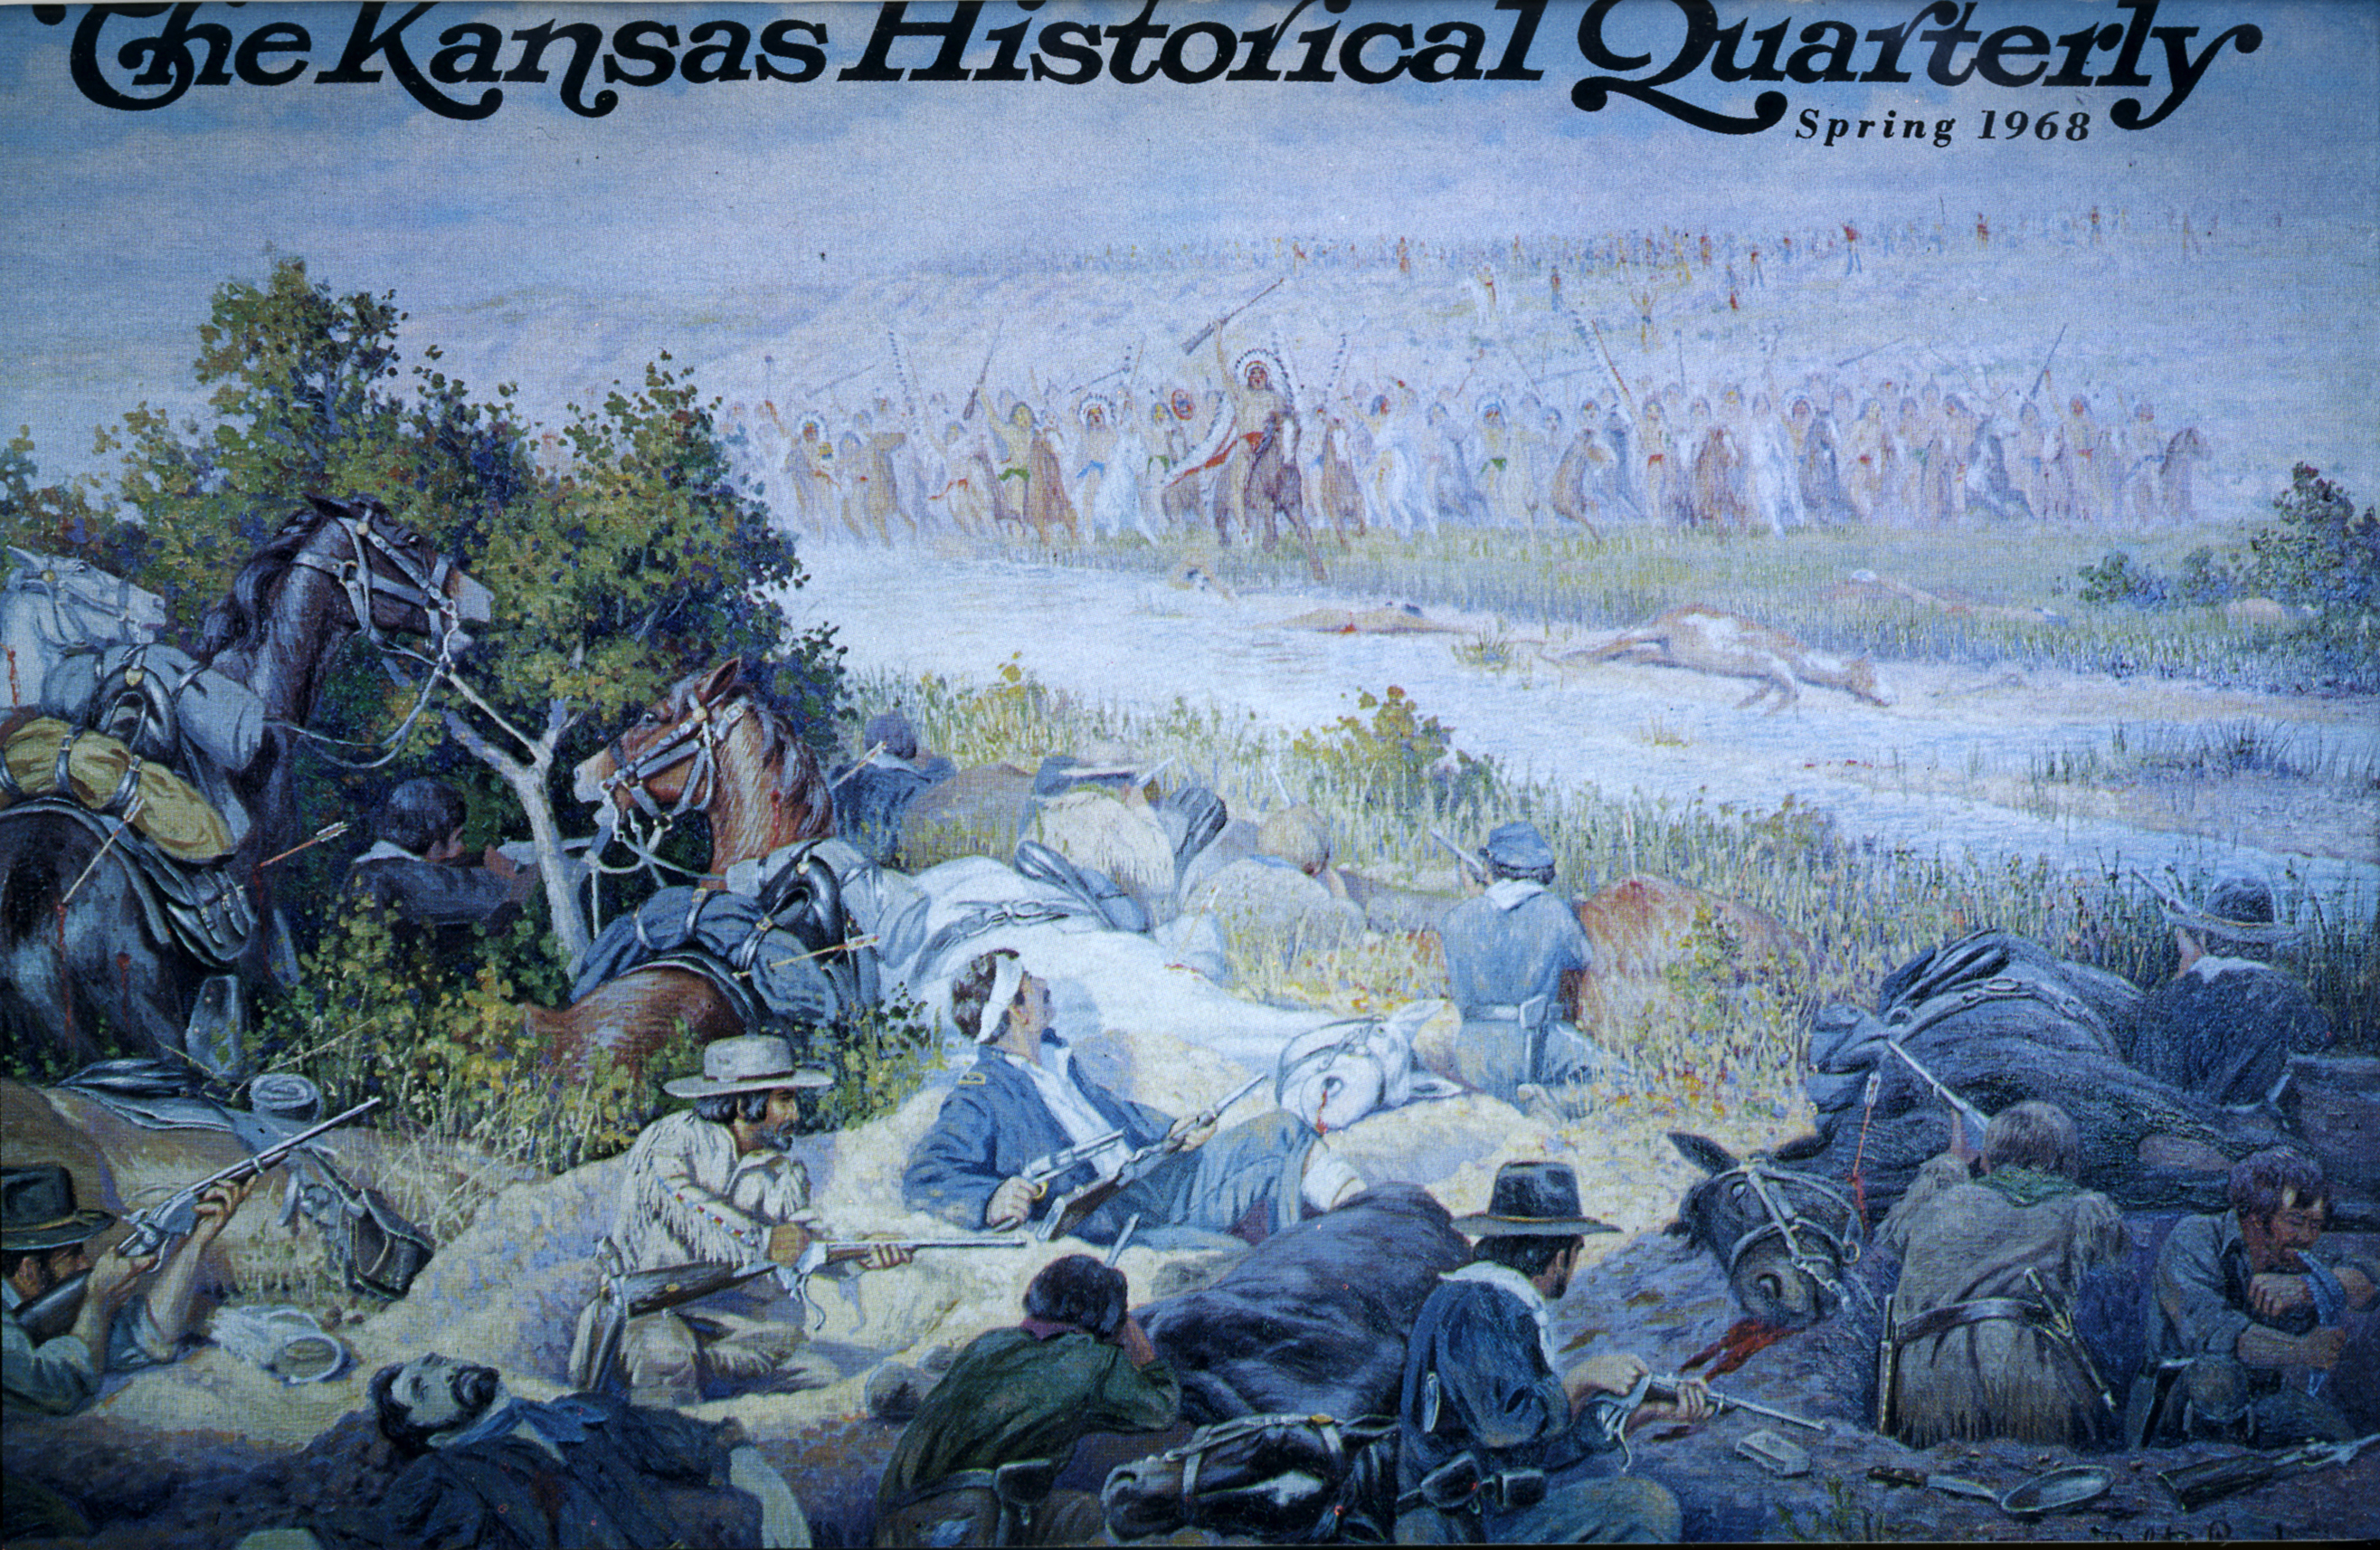 Kansas Historical Quarterly, Spring 1968